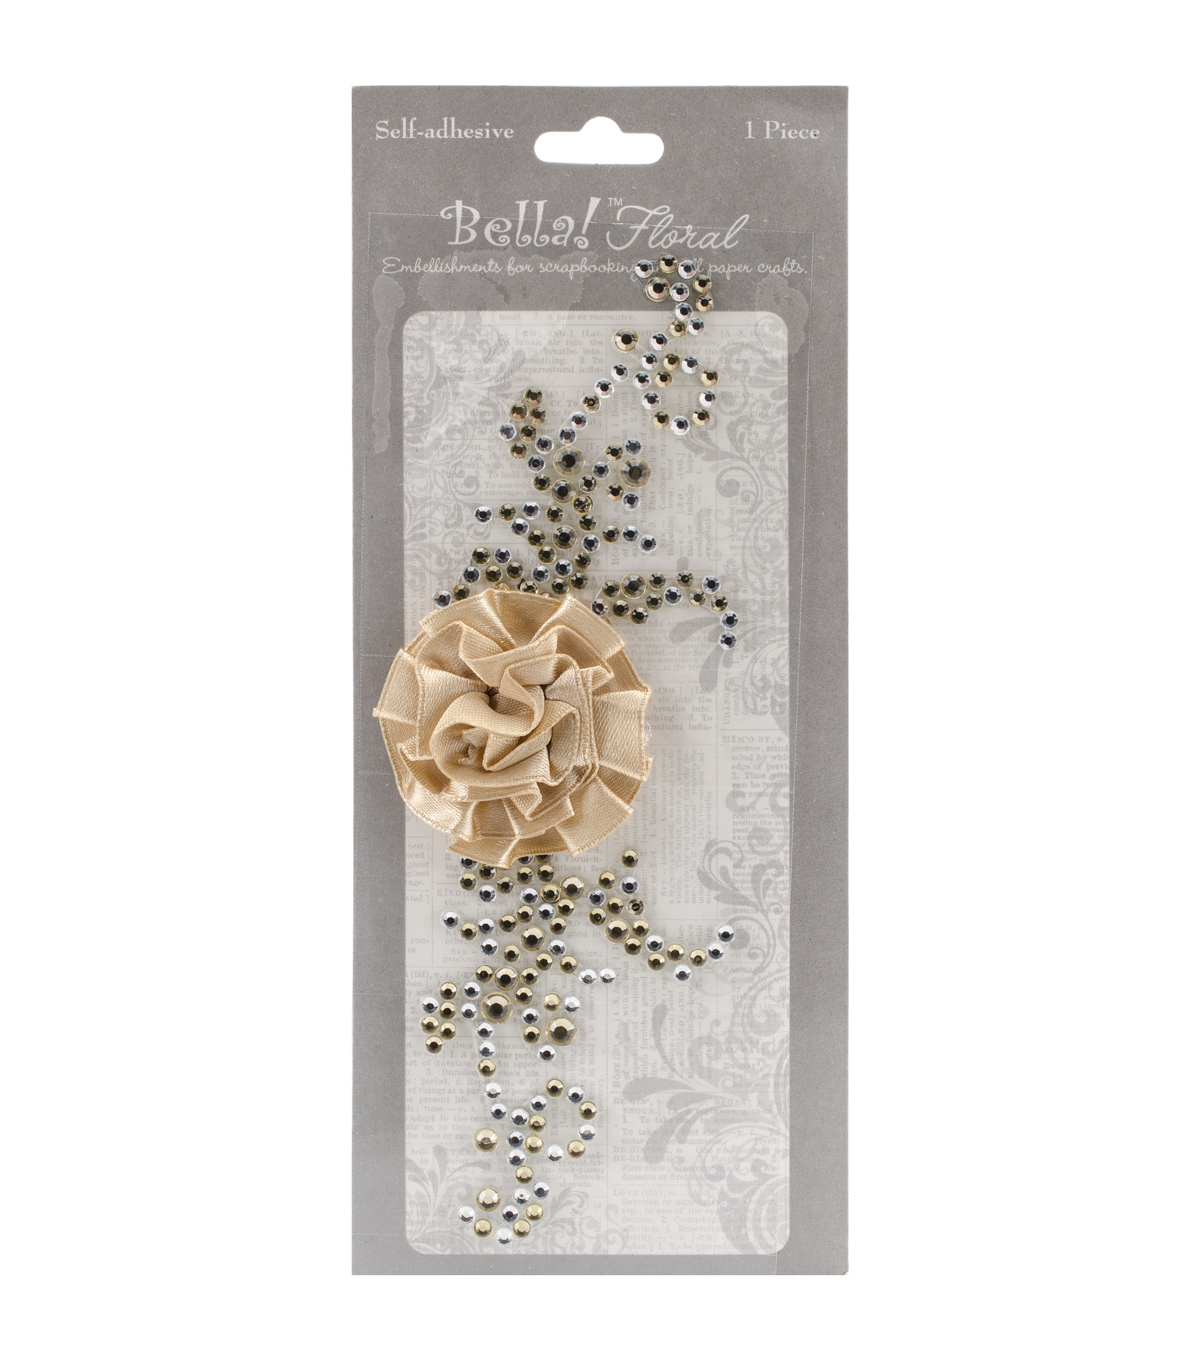 Ruby Rock It Bella! Bling & Fabric Floral Trim Embellishments, Gold